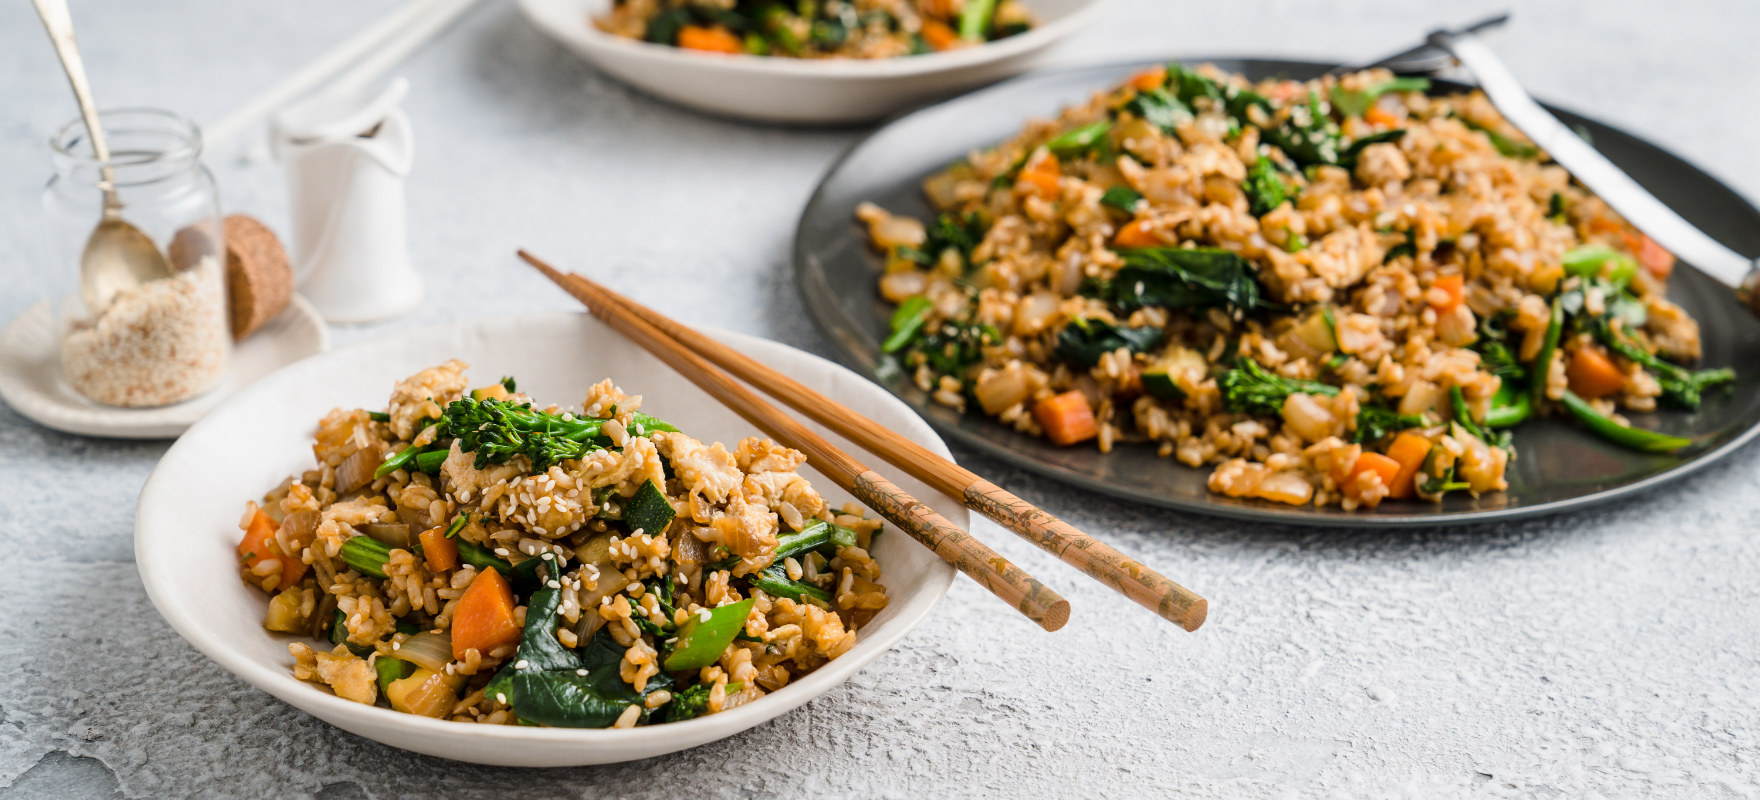 Stir-fried brown rice and vegetables image 1